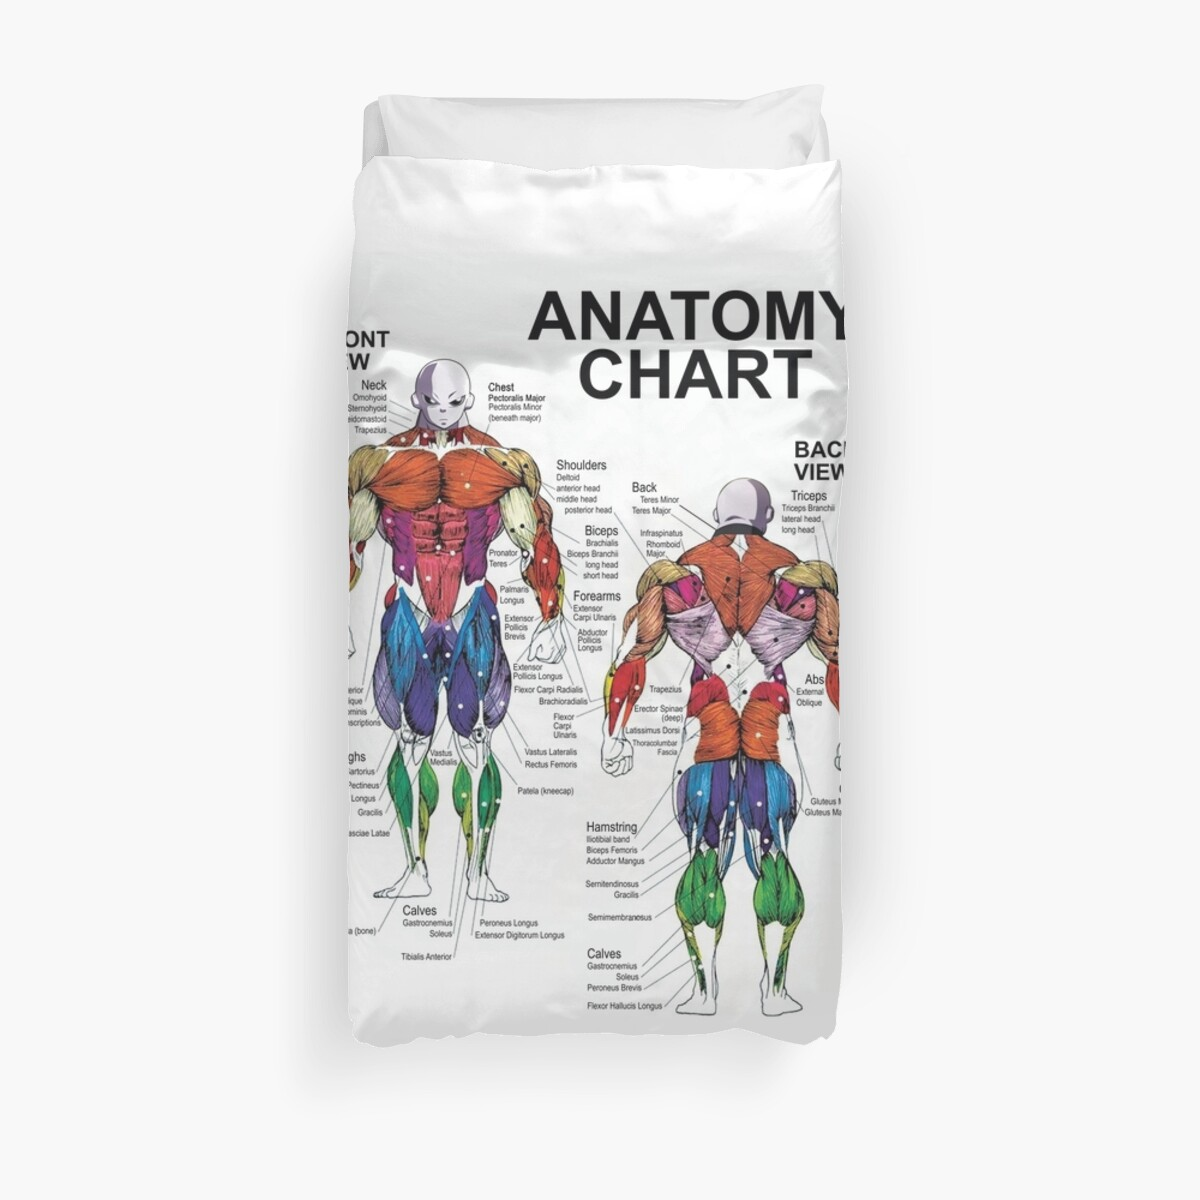 Anatomy chart muscle diagram duvet covers by fanou boomboom anatomy chart muscle diagram by fanou boomboom ccuart Gallery